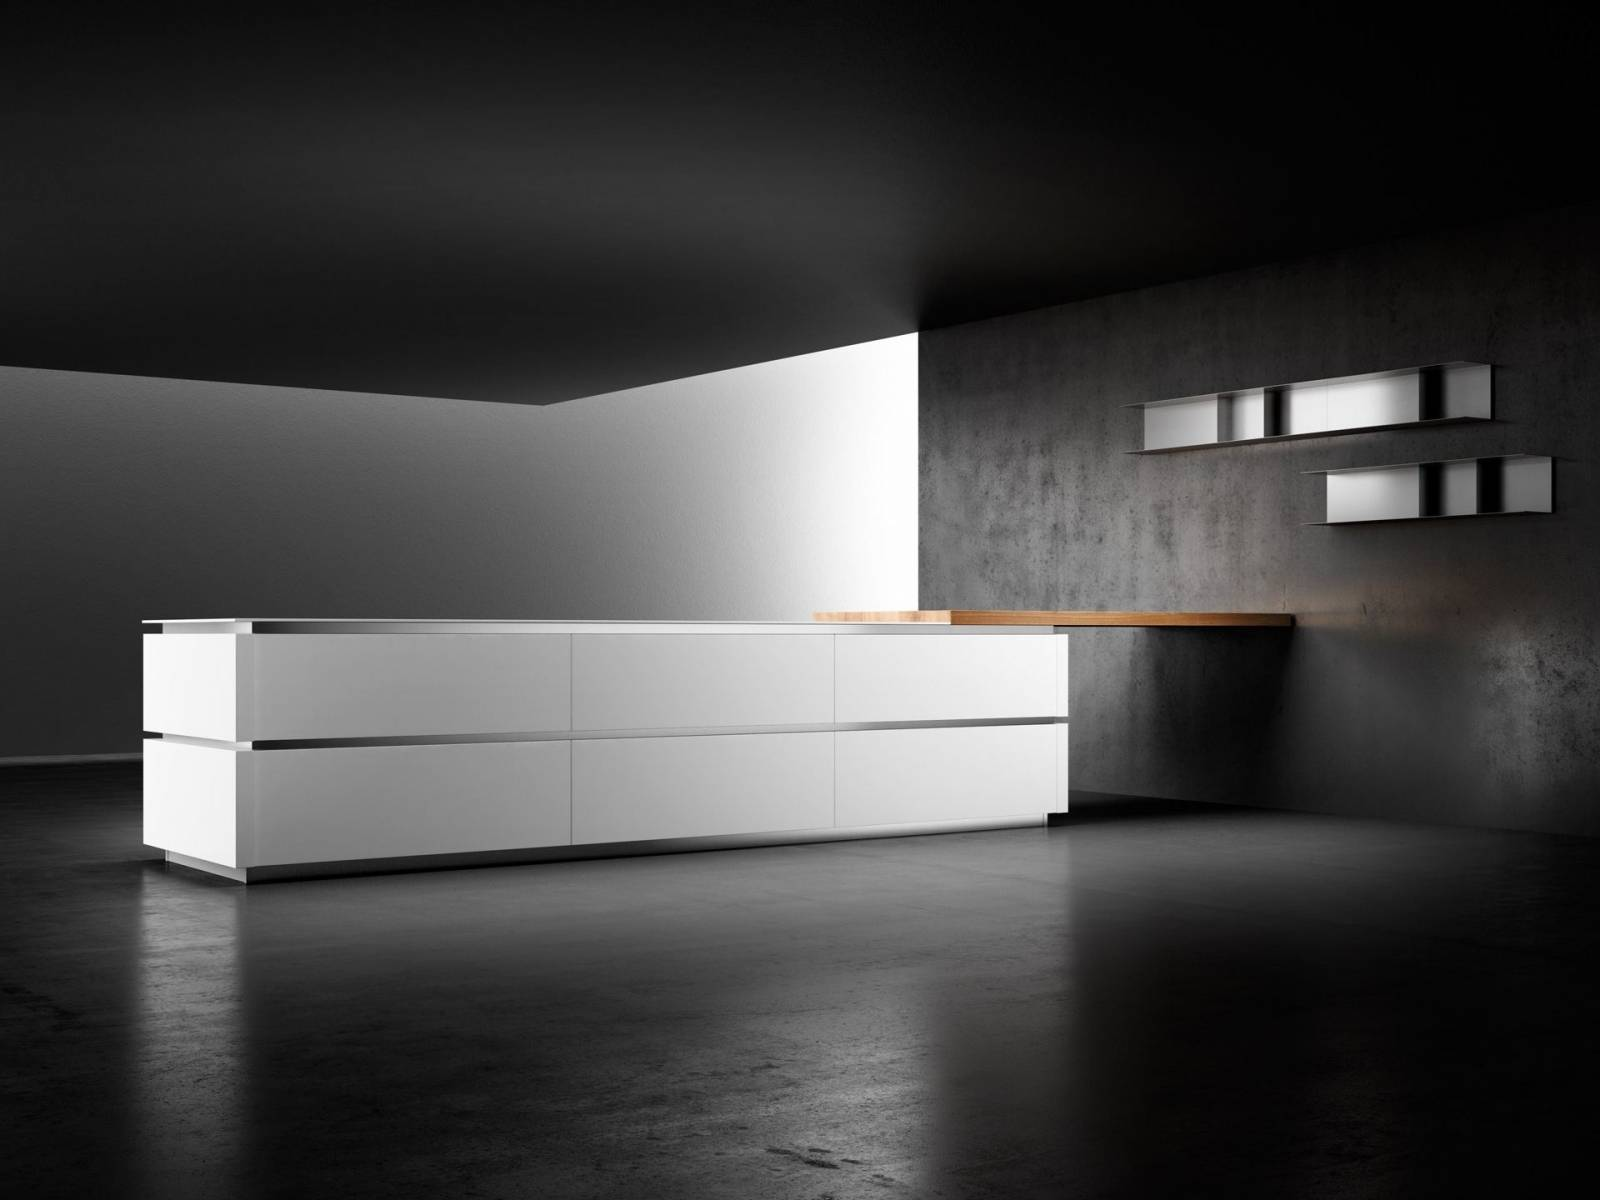 cherche cuisiniste proche le havre 76600 odyss e. Black Bedroom Furniture Sets. Home Design Ideas